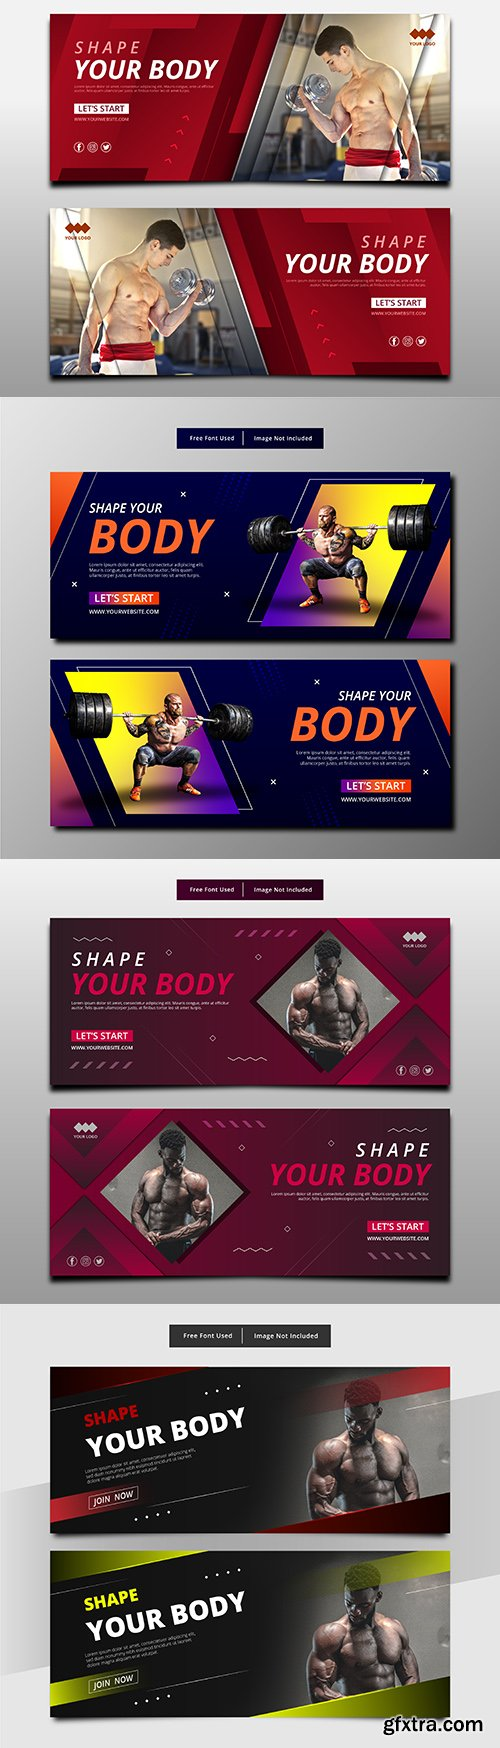 Abstract banner shape your body fitness template